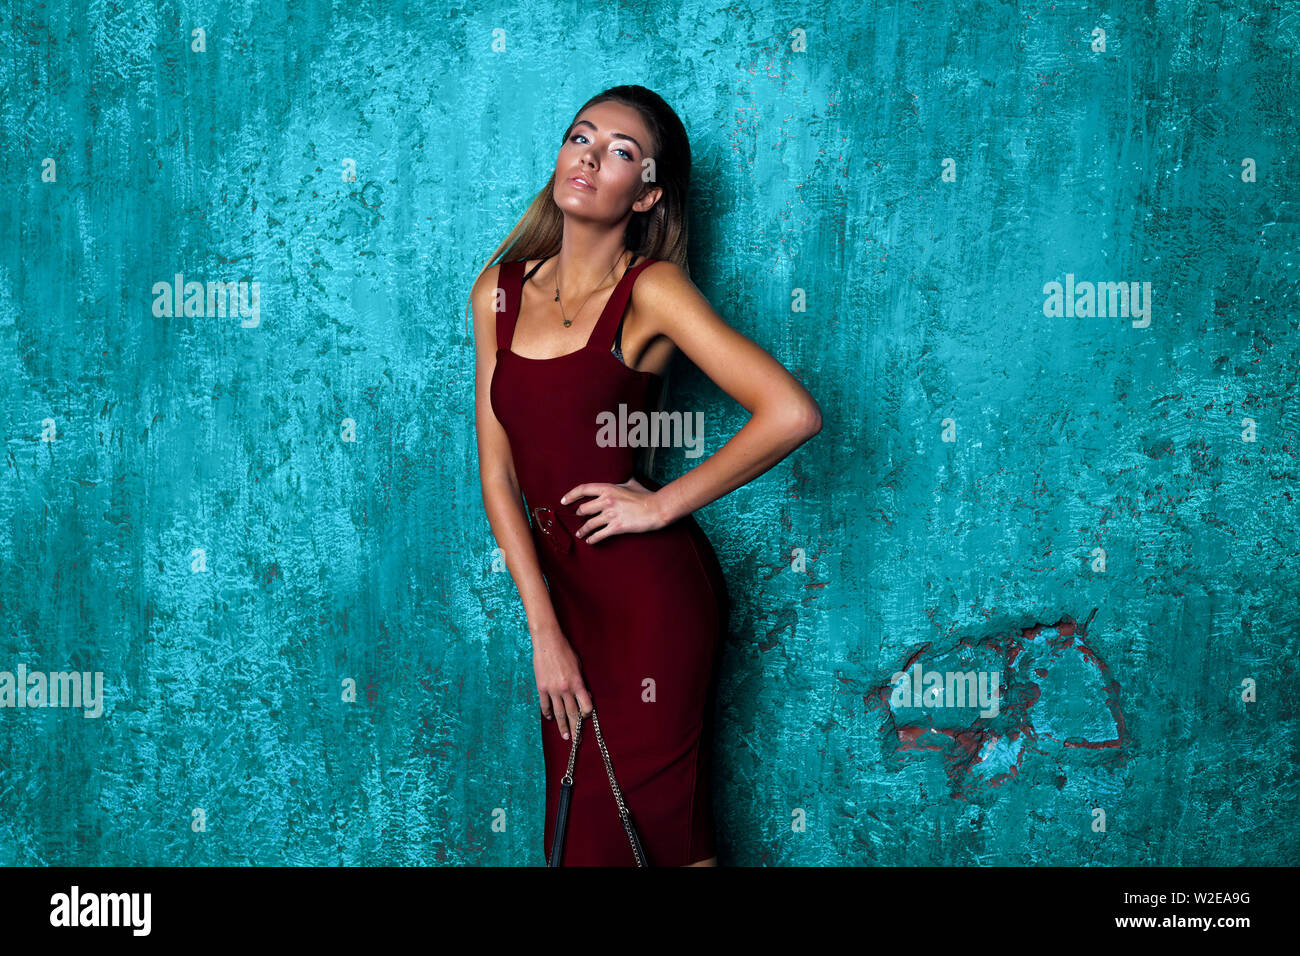 Passion girl with long blonde hair demonstrate new stylish burgundy dress. Slim perfect body, bronze skin, long arms. Fashionable look, beautiful face Stock Photo